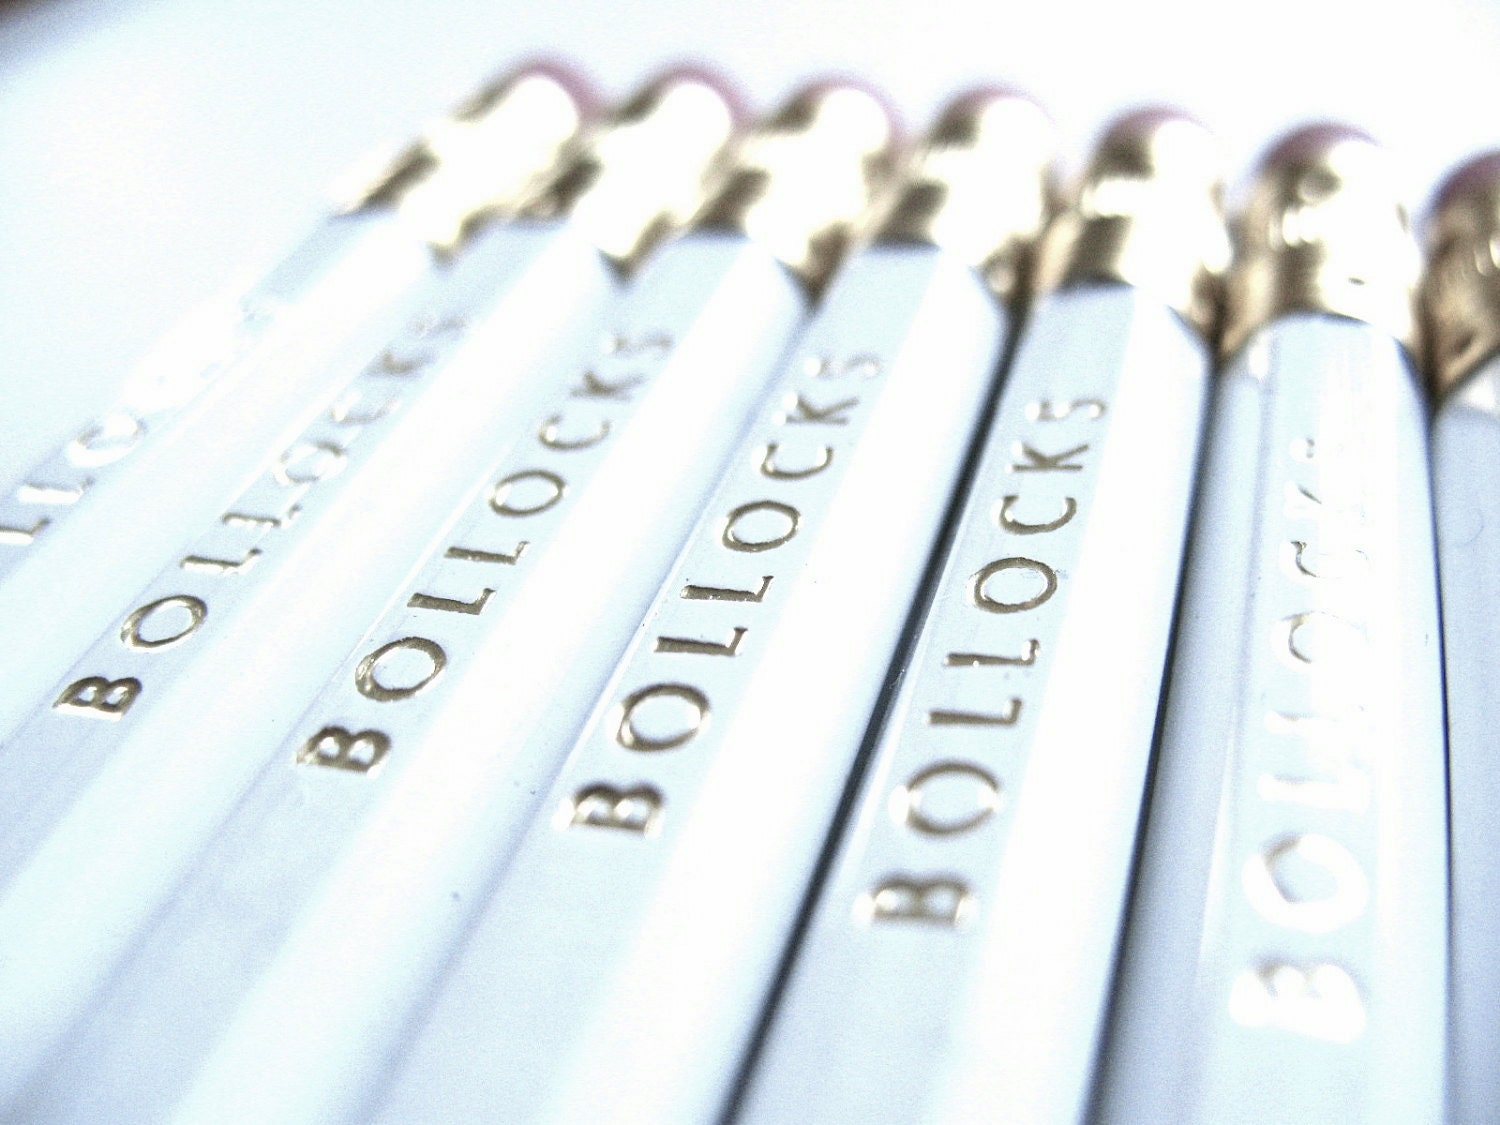 PENCILS (6) bollocks - white - graphite hex pencils w/ hand stamped pencil box